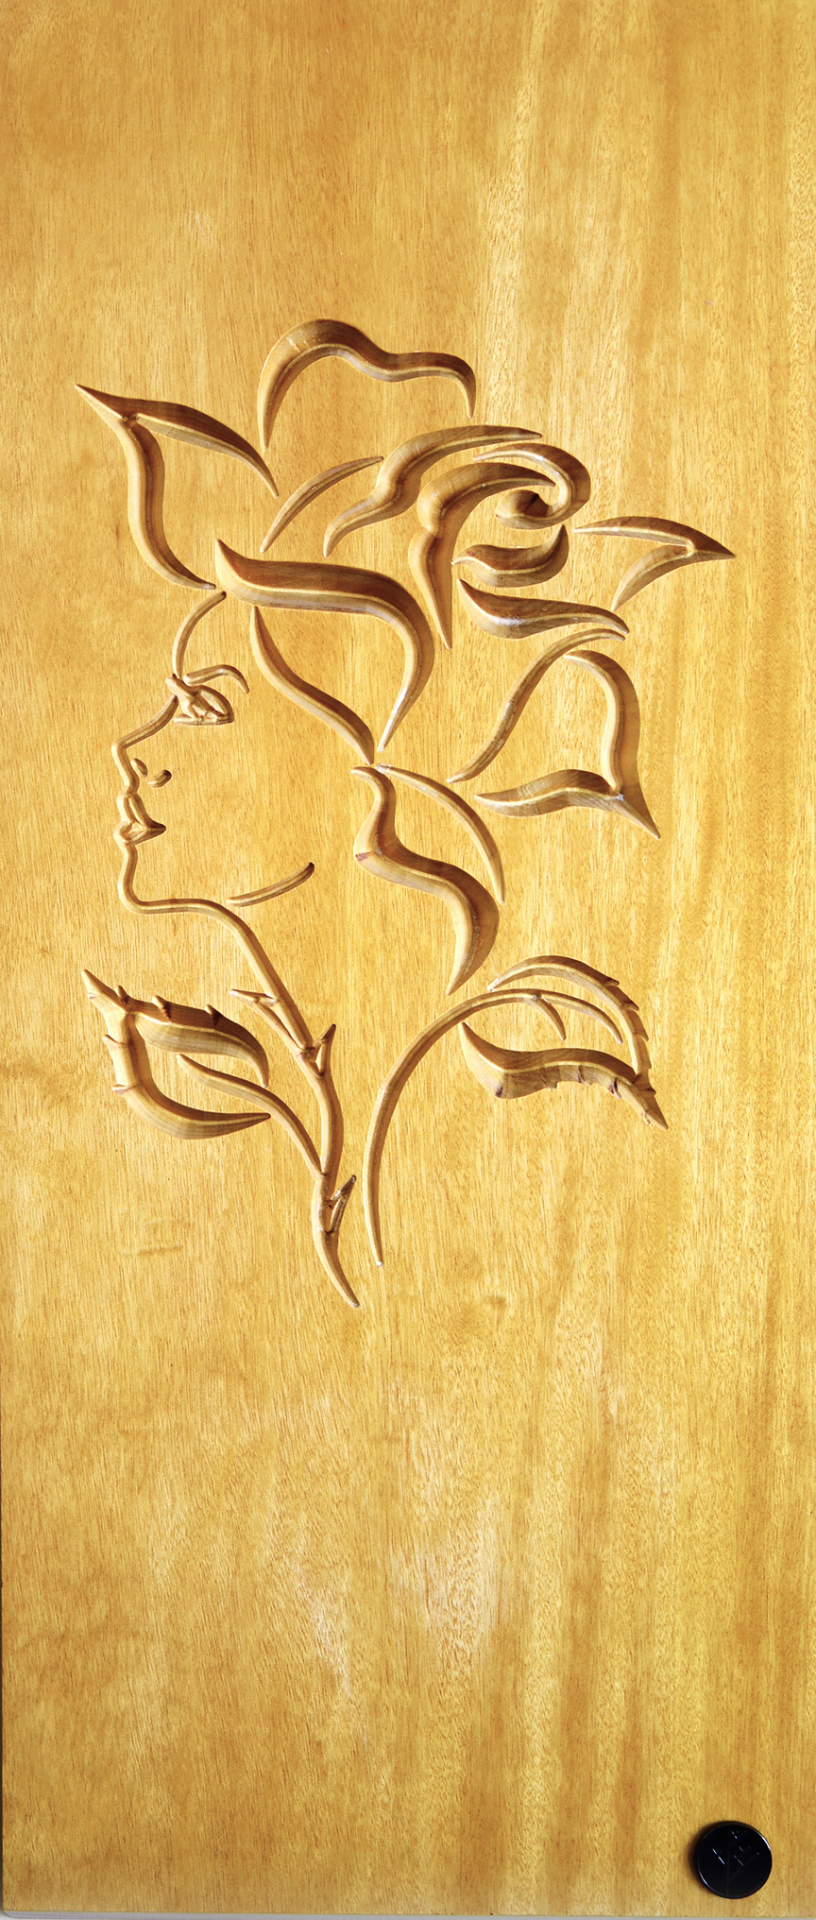 Essence of a woman Wood burning patterns Wood carving